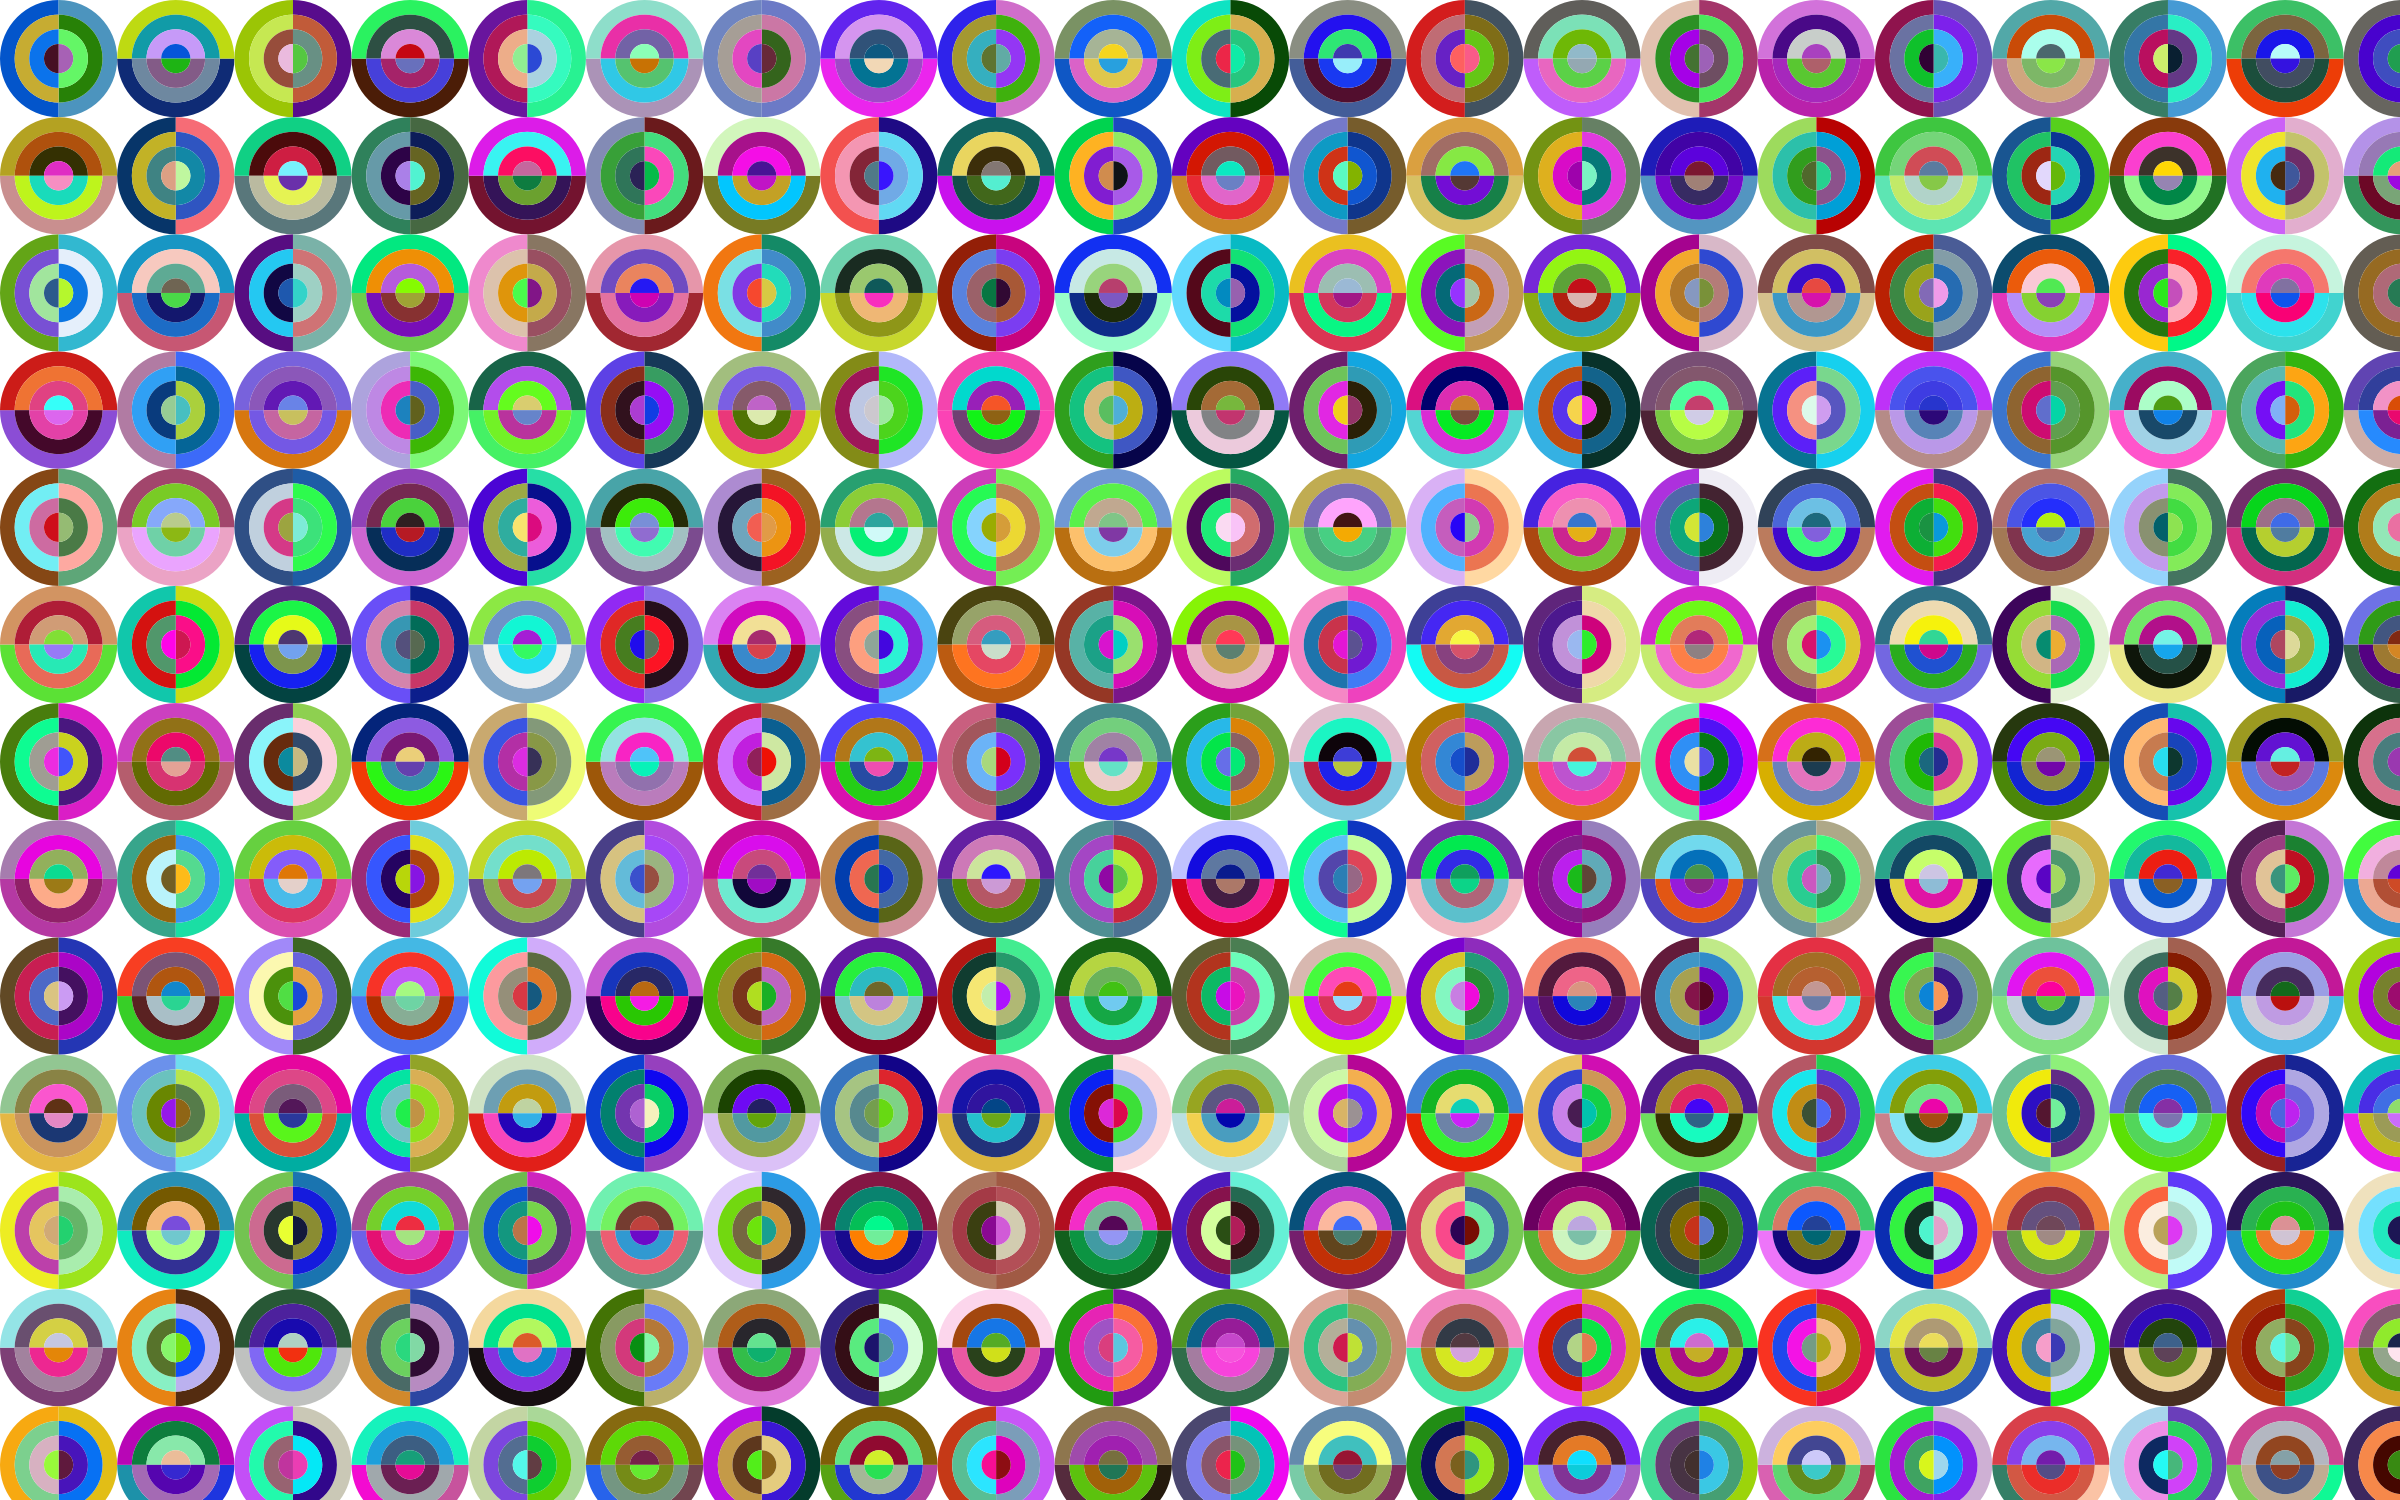 Prismatic Concentric Checkered Circles Pattern by GDJ